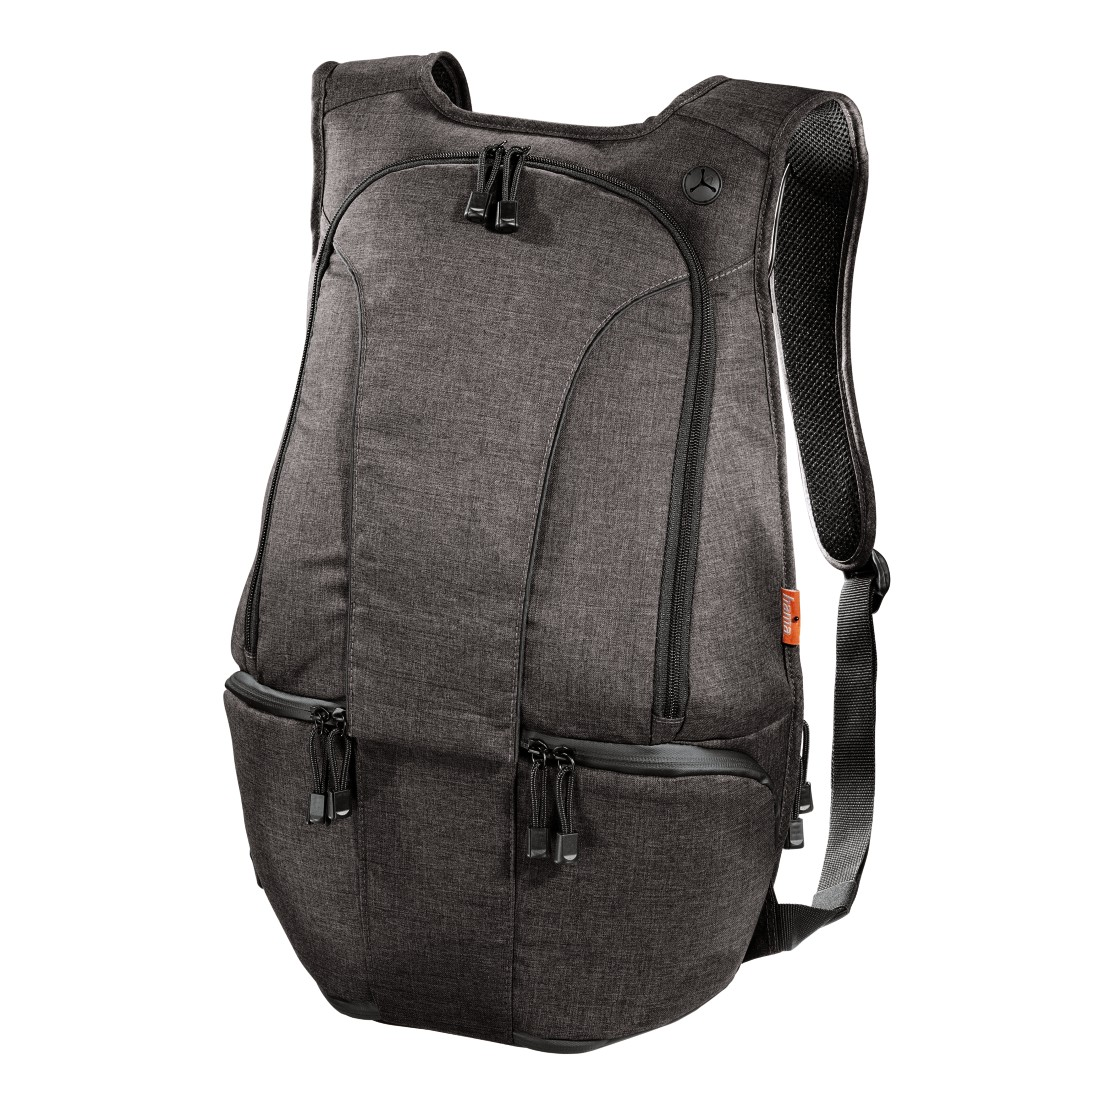 abx High-Res Image - Hama, Lismore Camera Backpack, 170, black